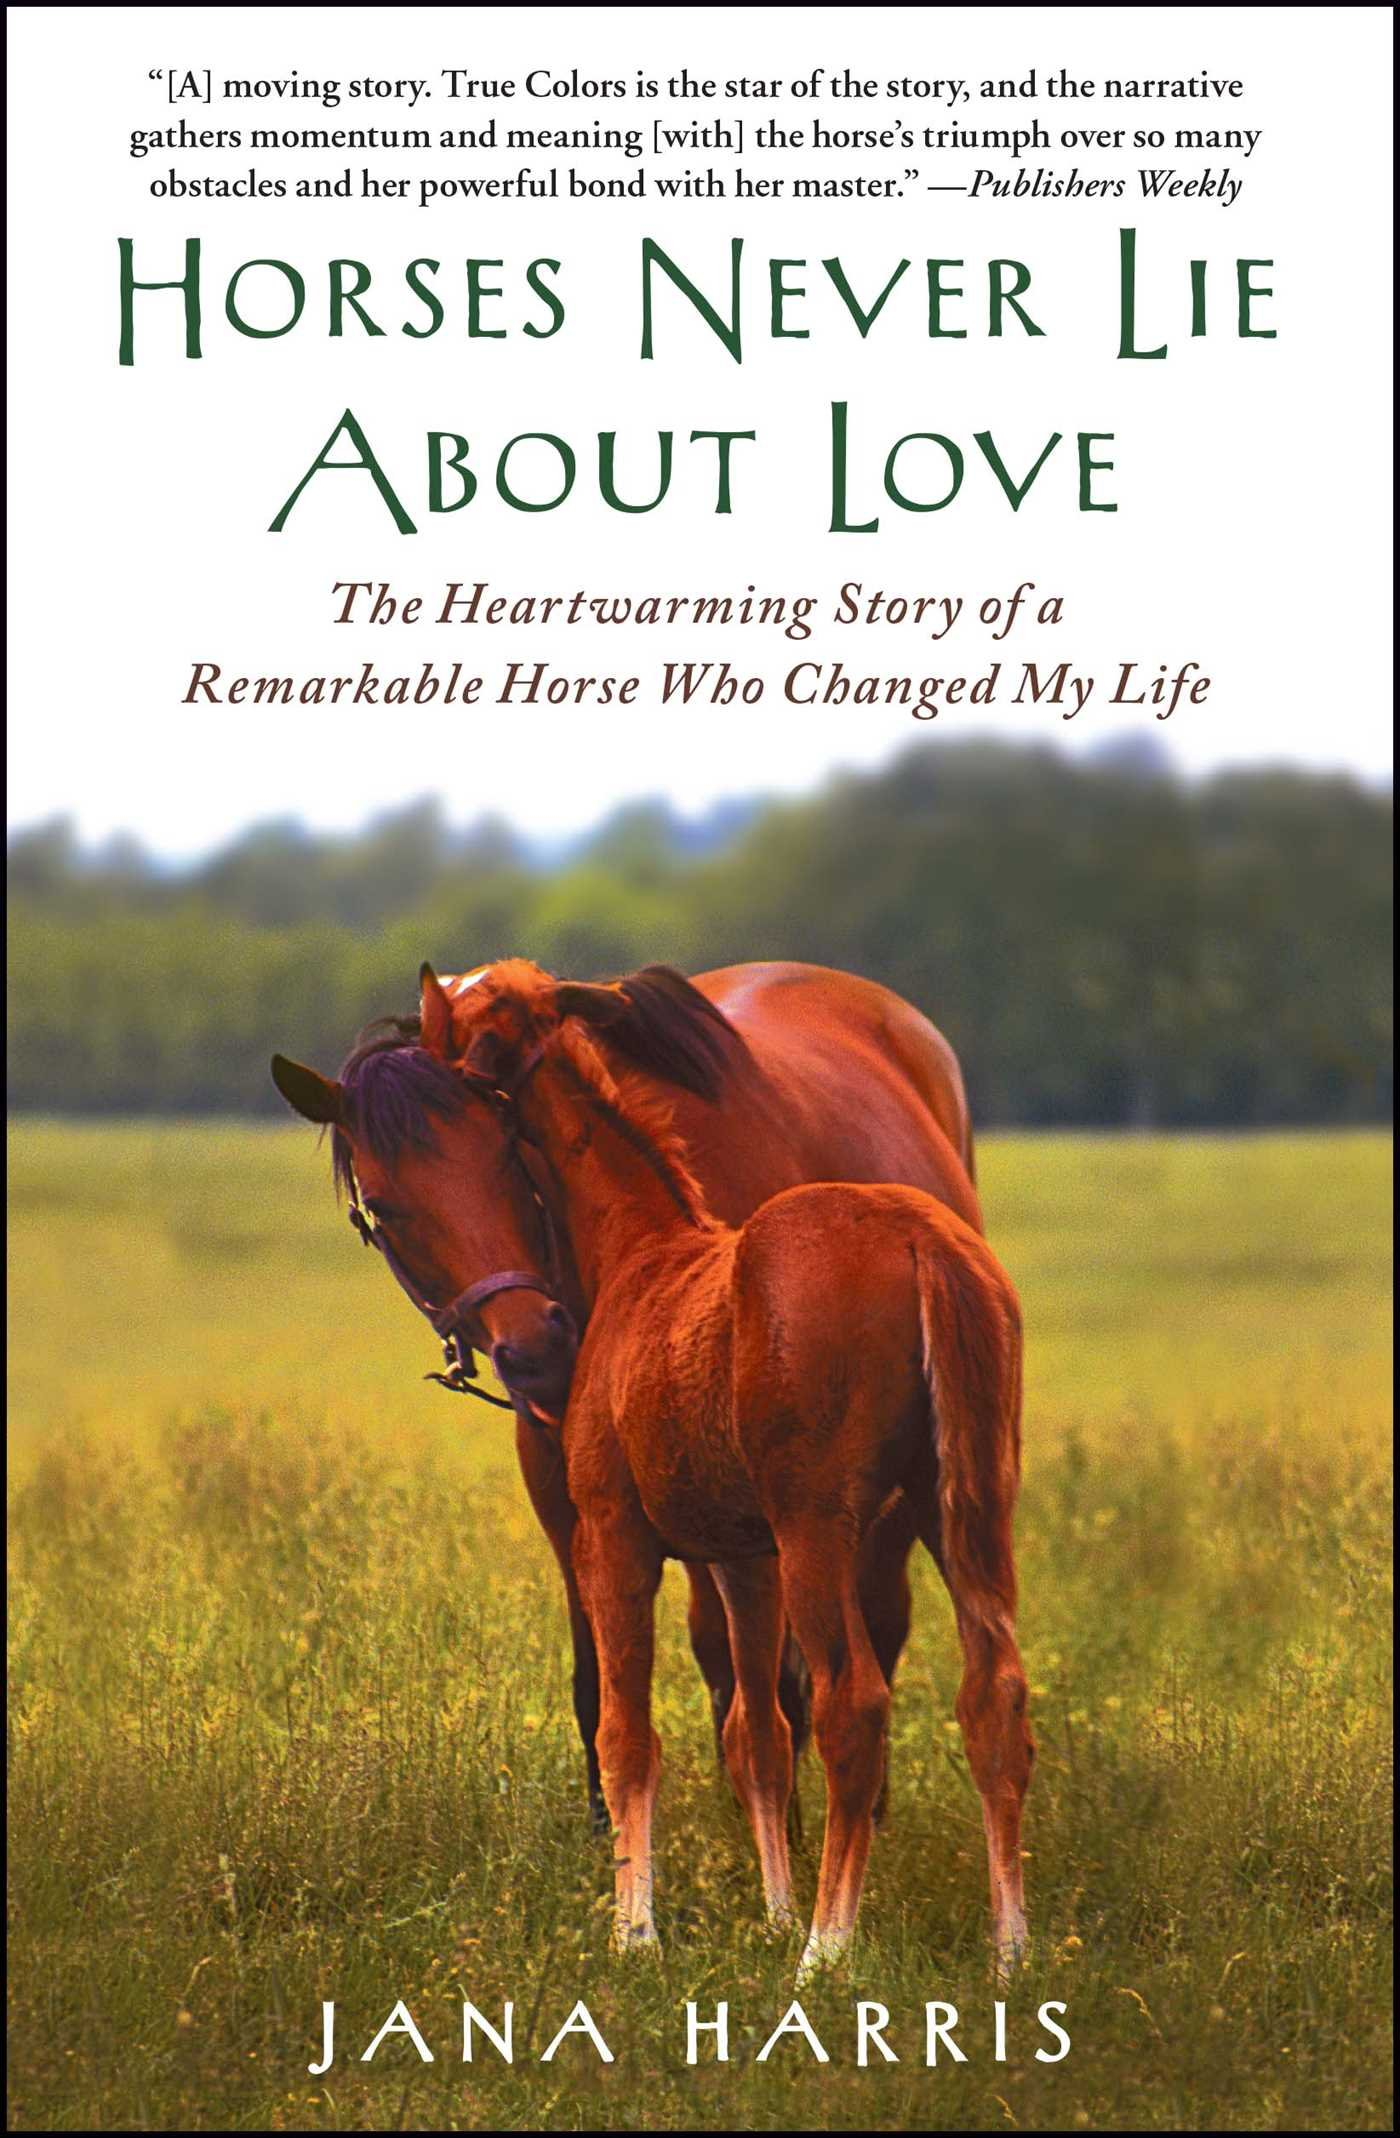 Horses Never Lie About Love: The Heartwarming Story Of A Remarkable Horse  Who Changed My Life: Jana Harris: 9781451605853: Amazon: Books